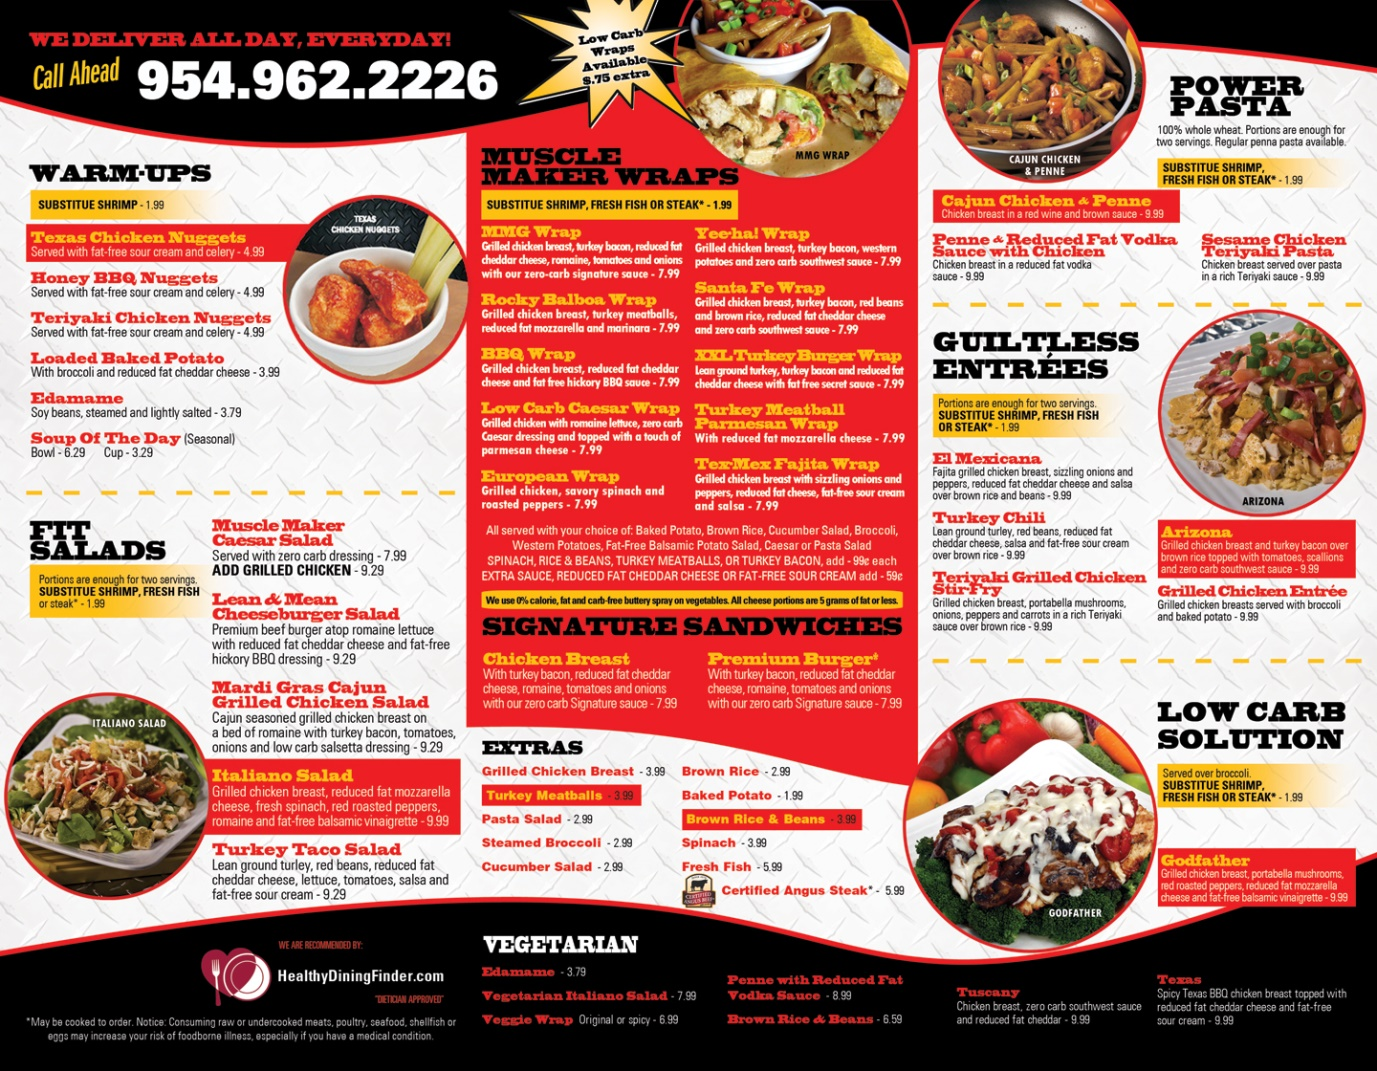 Restaurant Menu Design Ideas : Most appetizing restaurant menu card design designhill